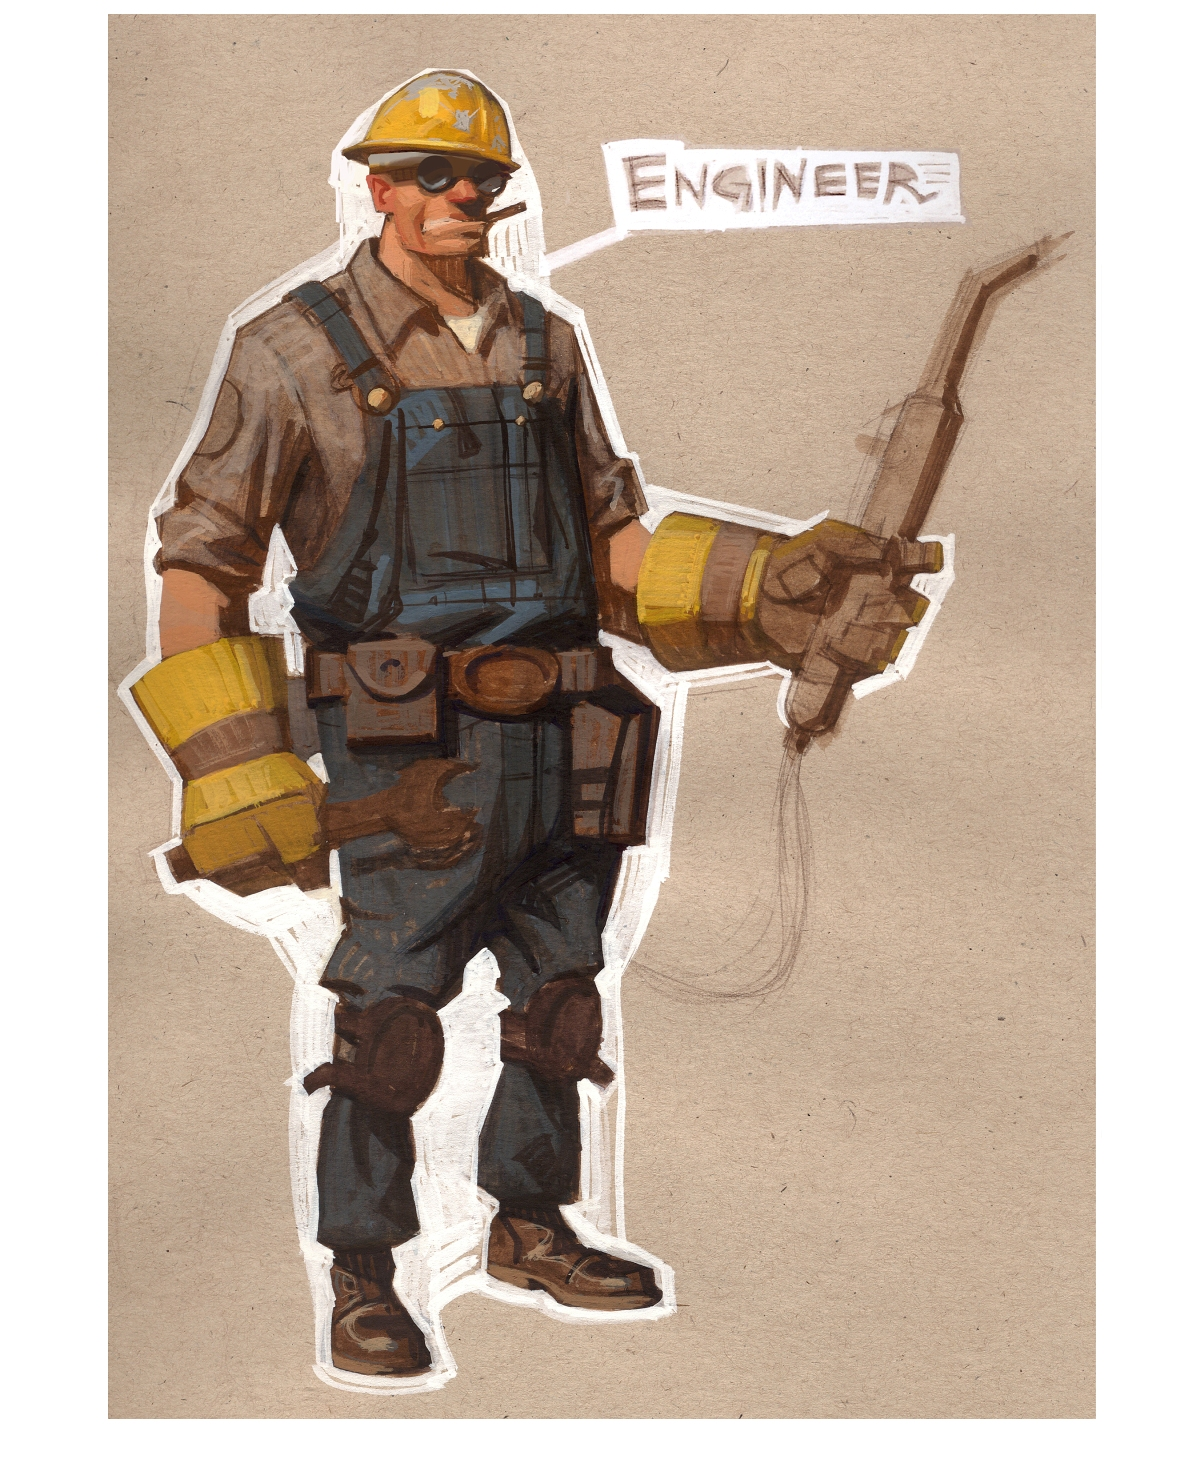 Engineer - valvearchive com > archive > Team Fortress > Team